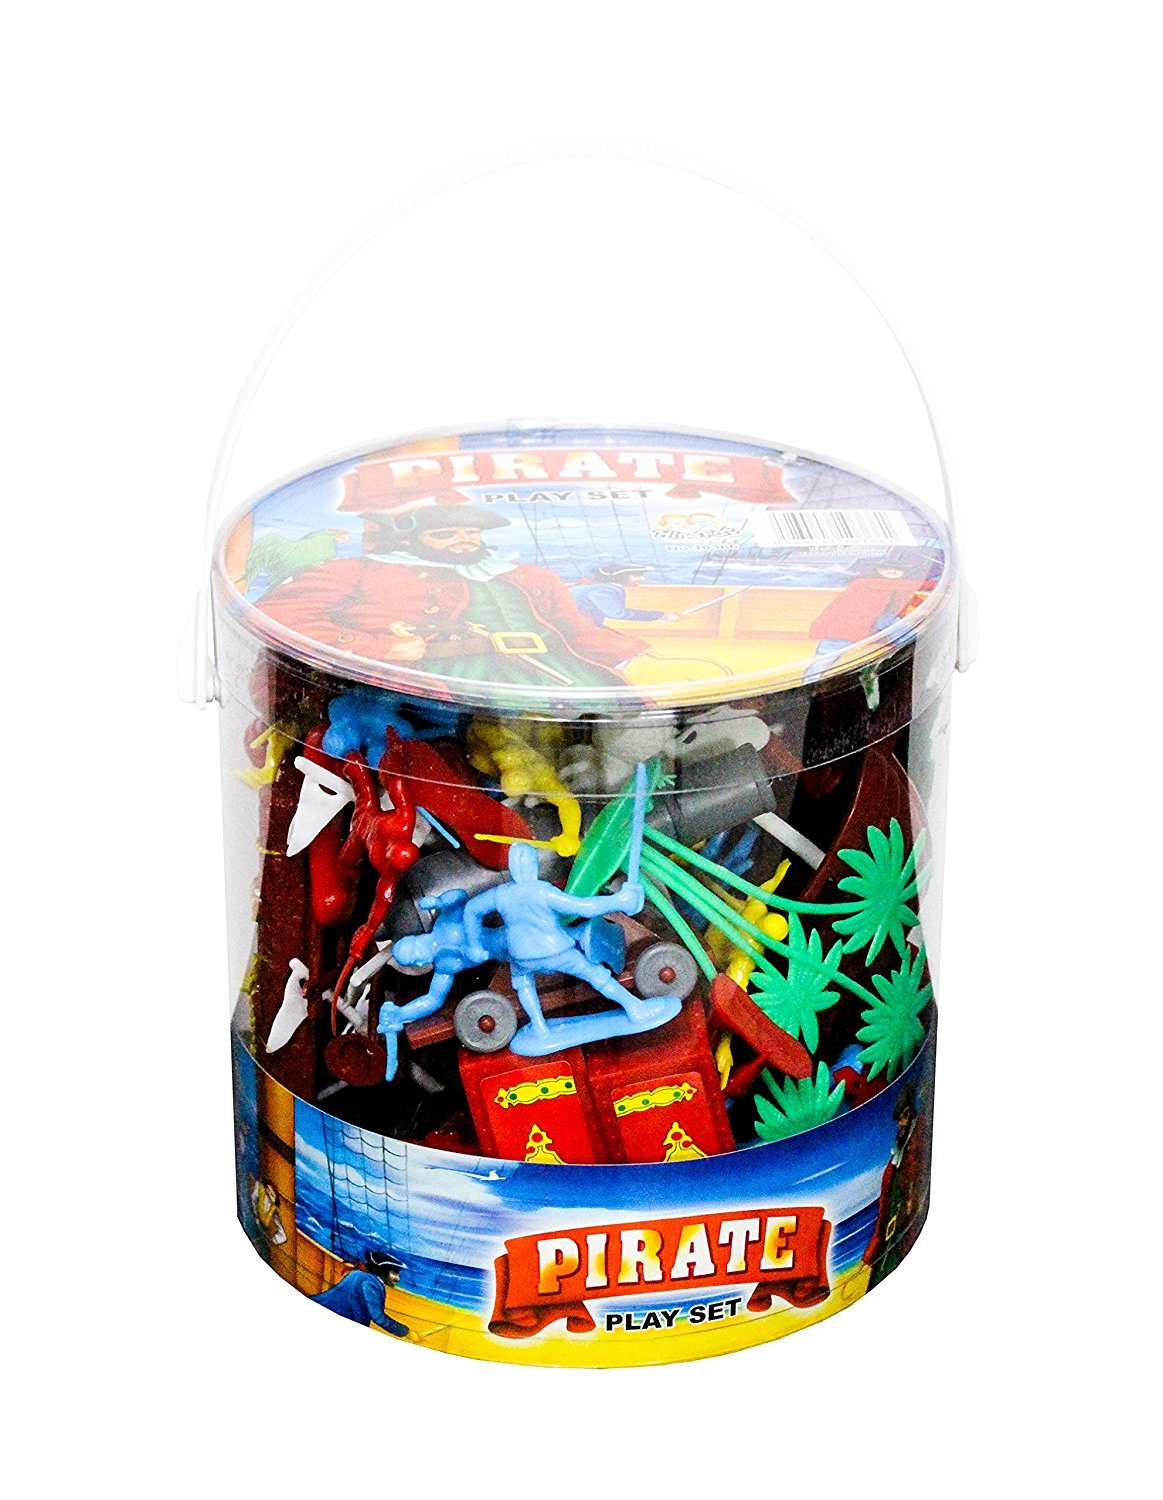 Bucket of Pirate Play Set